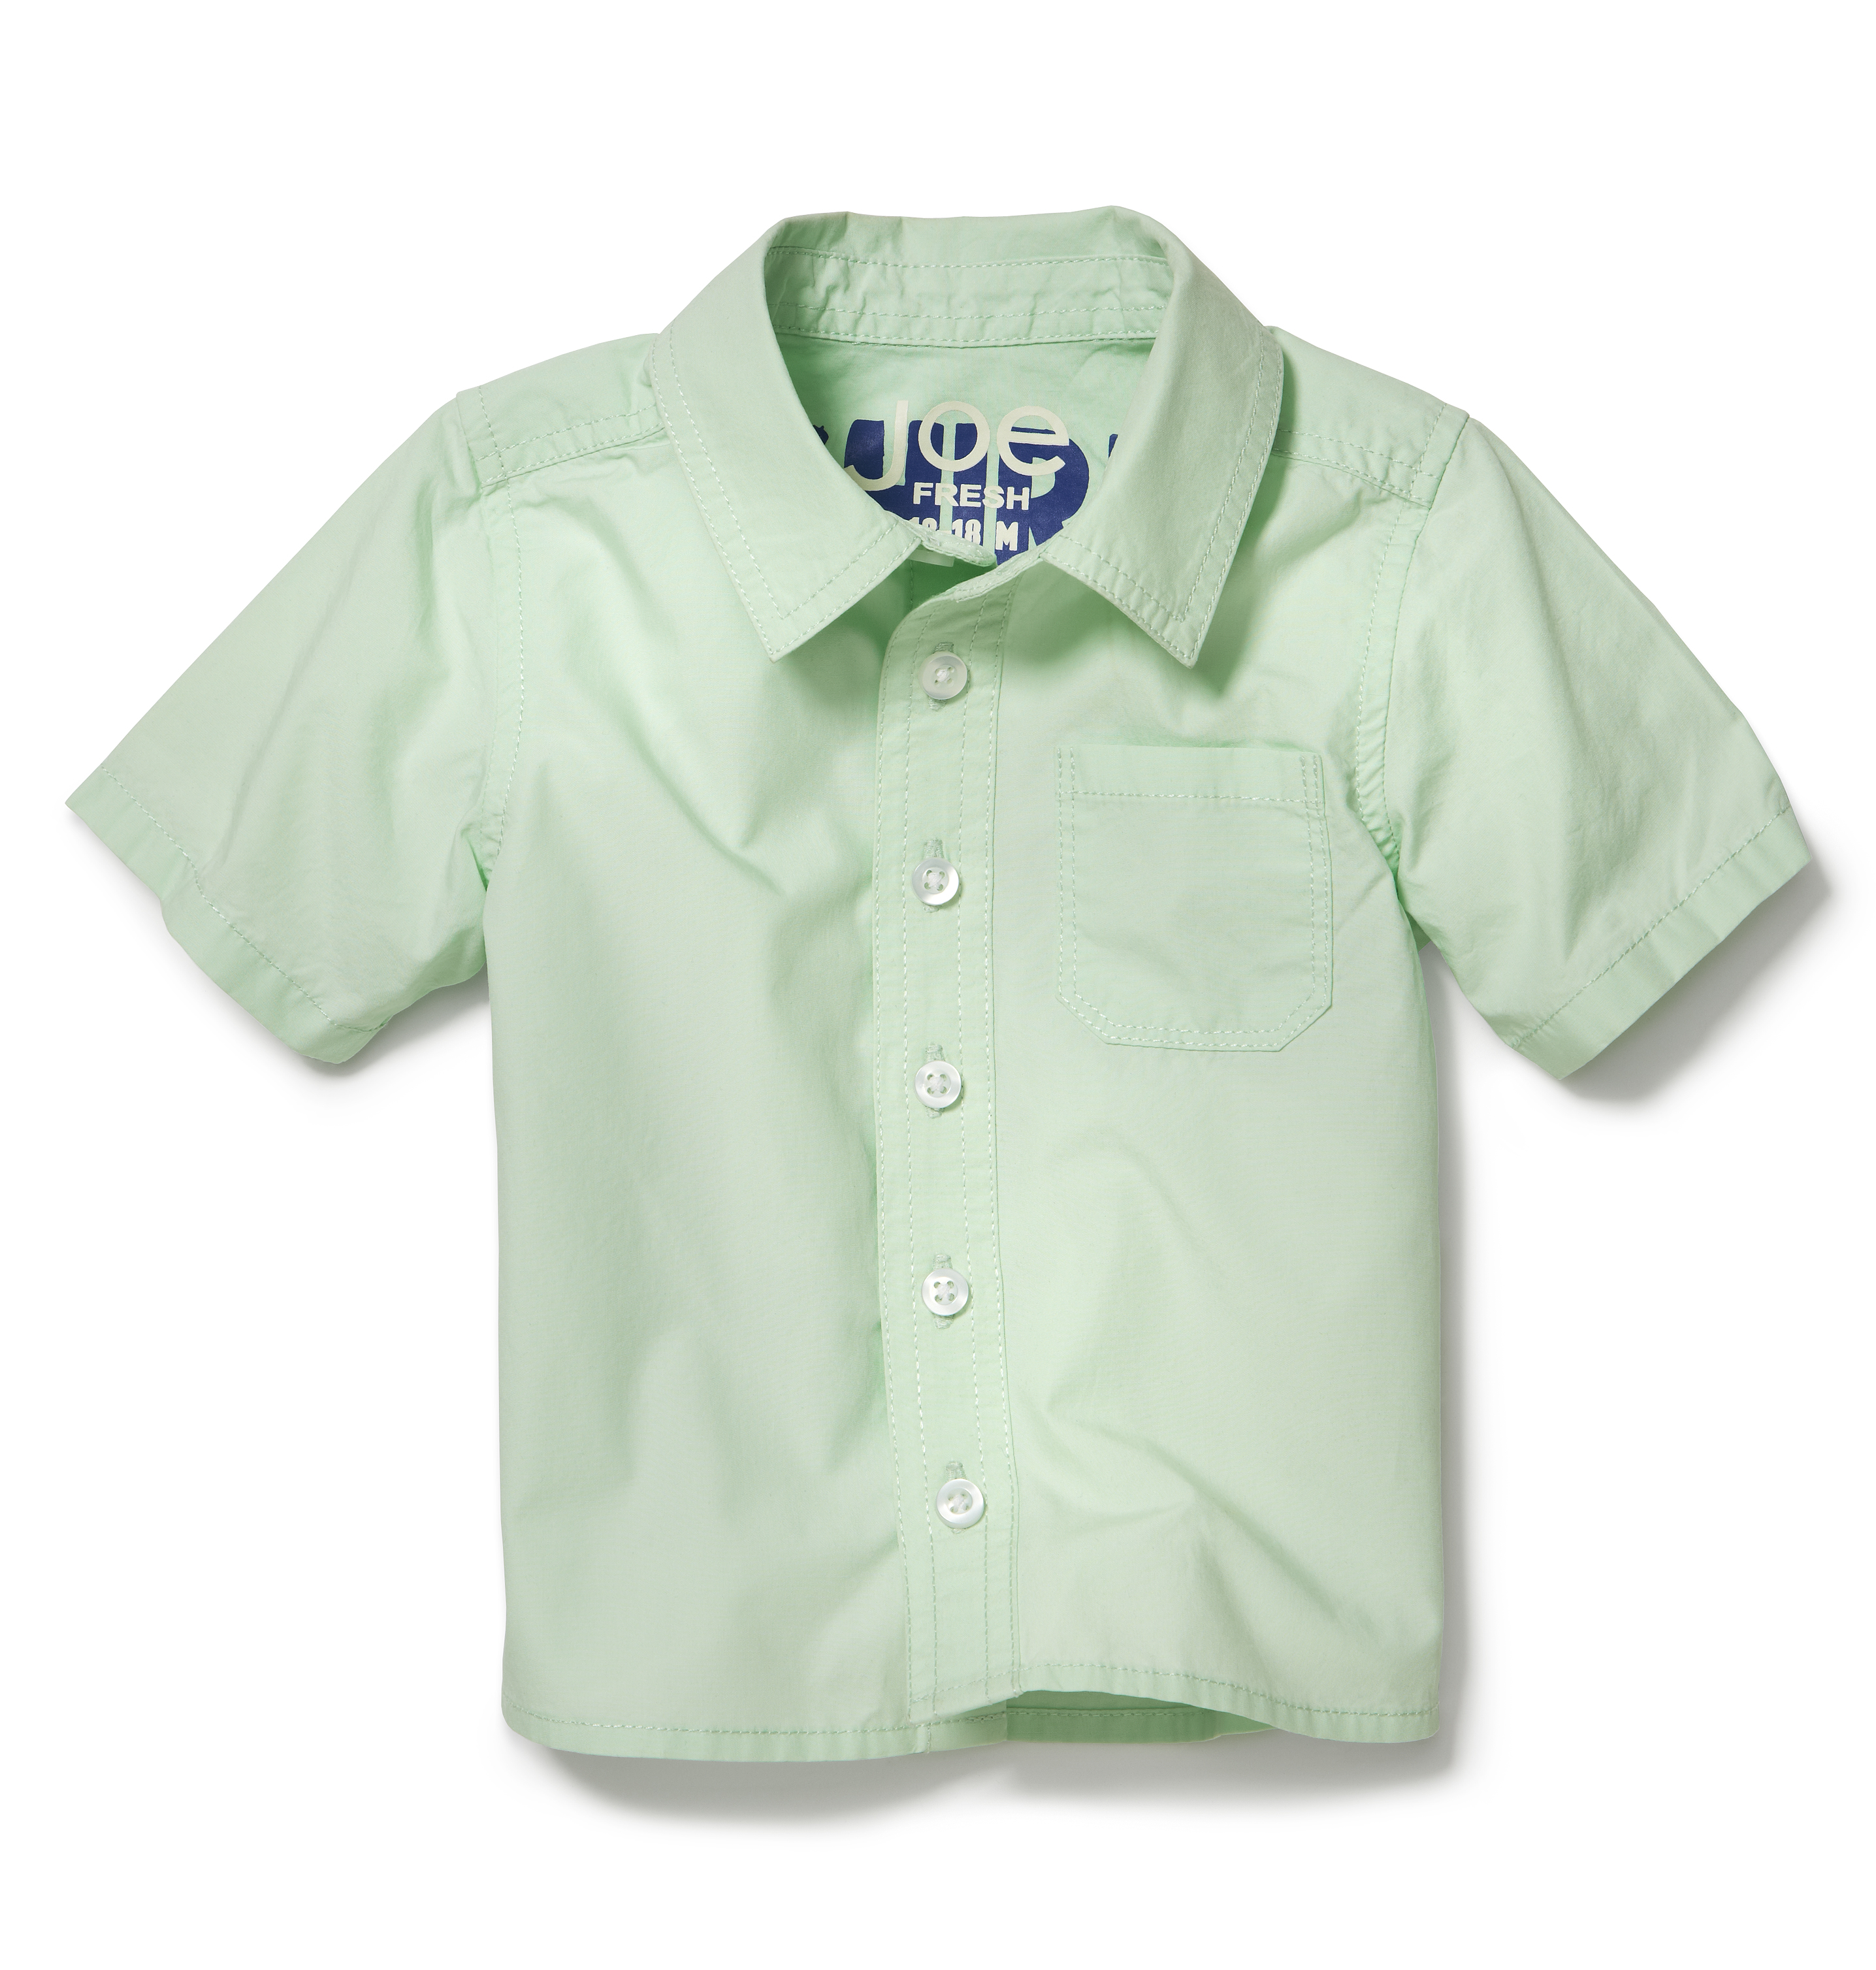 Kids Baby Boy Short Sleeve Shirt High-res